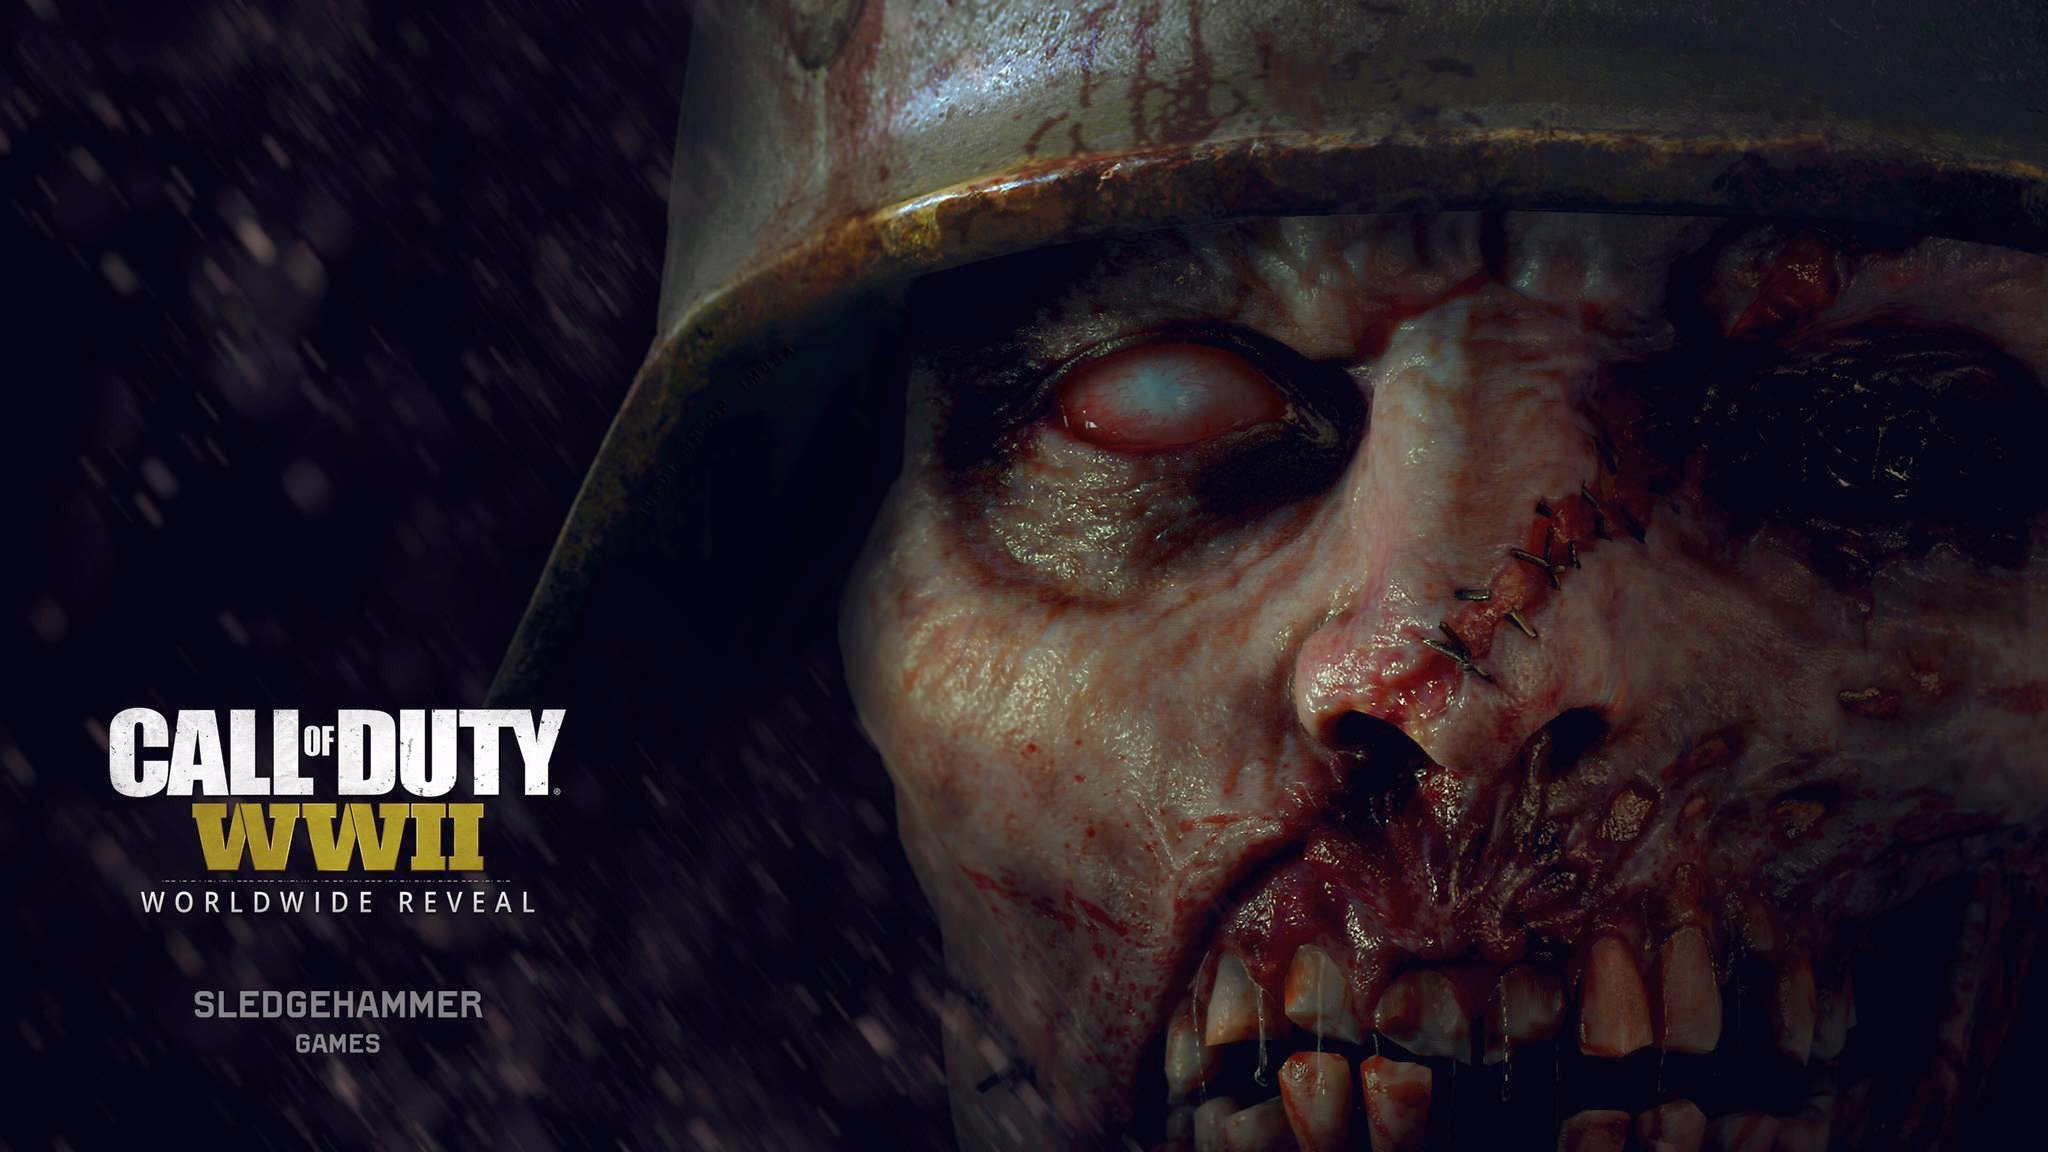 Call of Duty: WWII Zombie & Multiplayer Mode Details Revealed